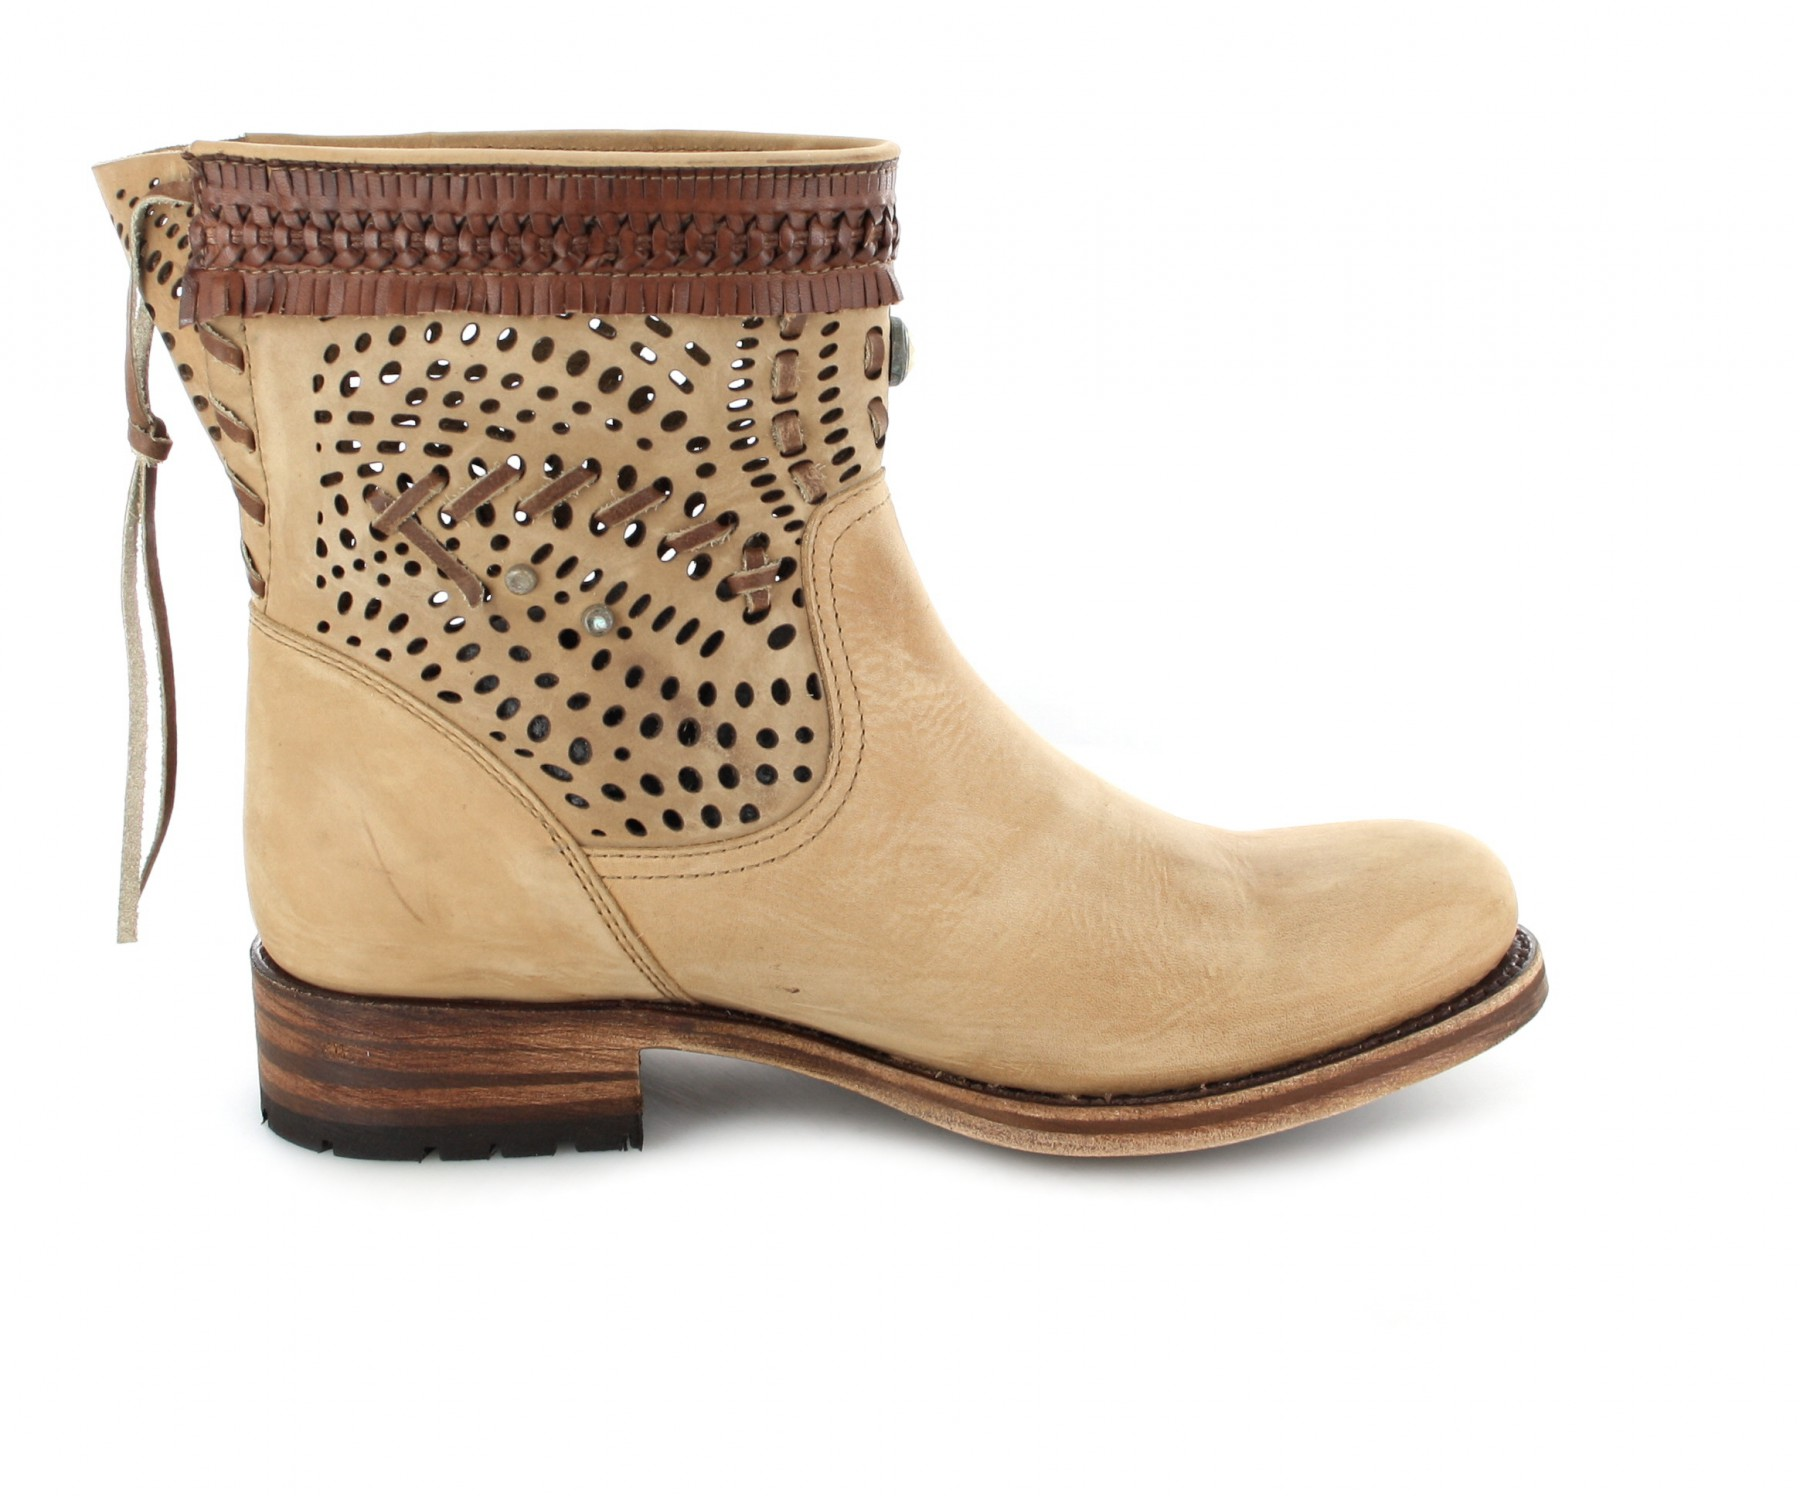 Sendra Boots 12440 Miel Fashion ankle boot - beige | Fashion Boots